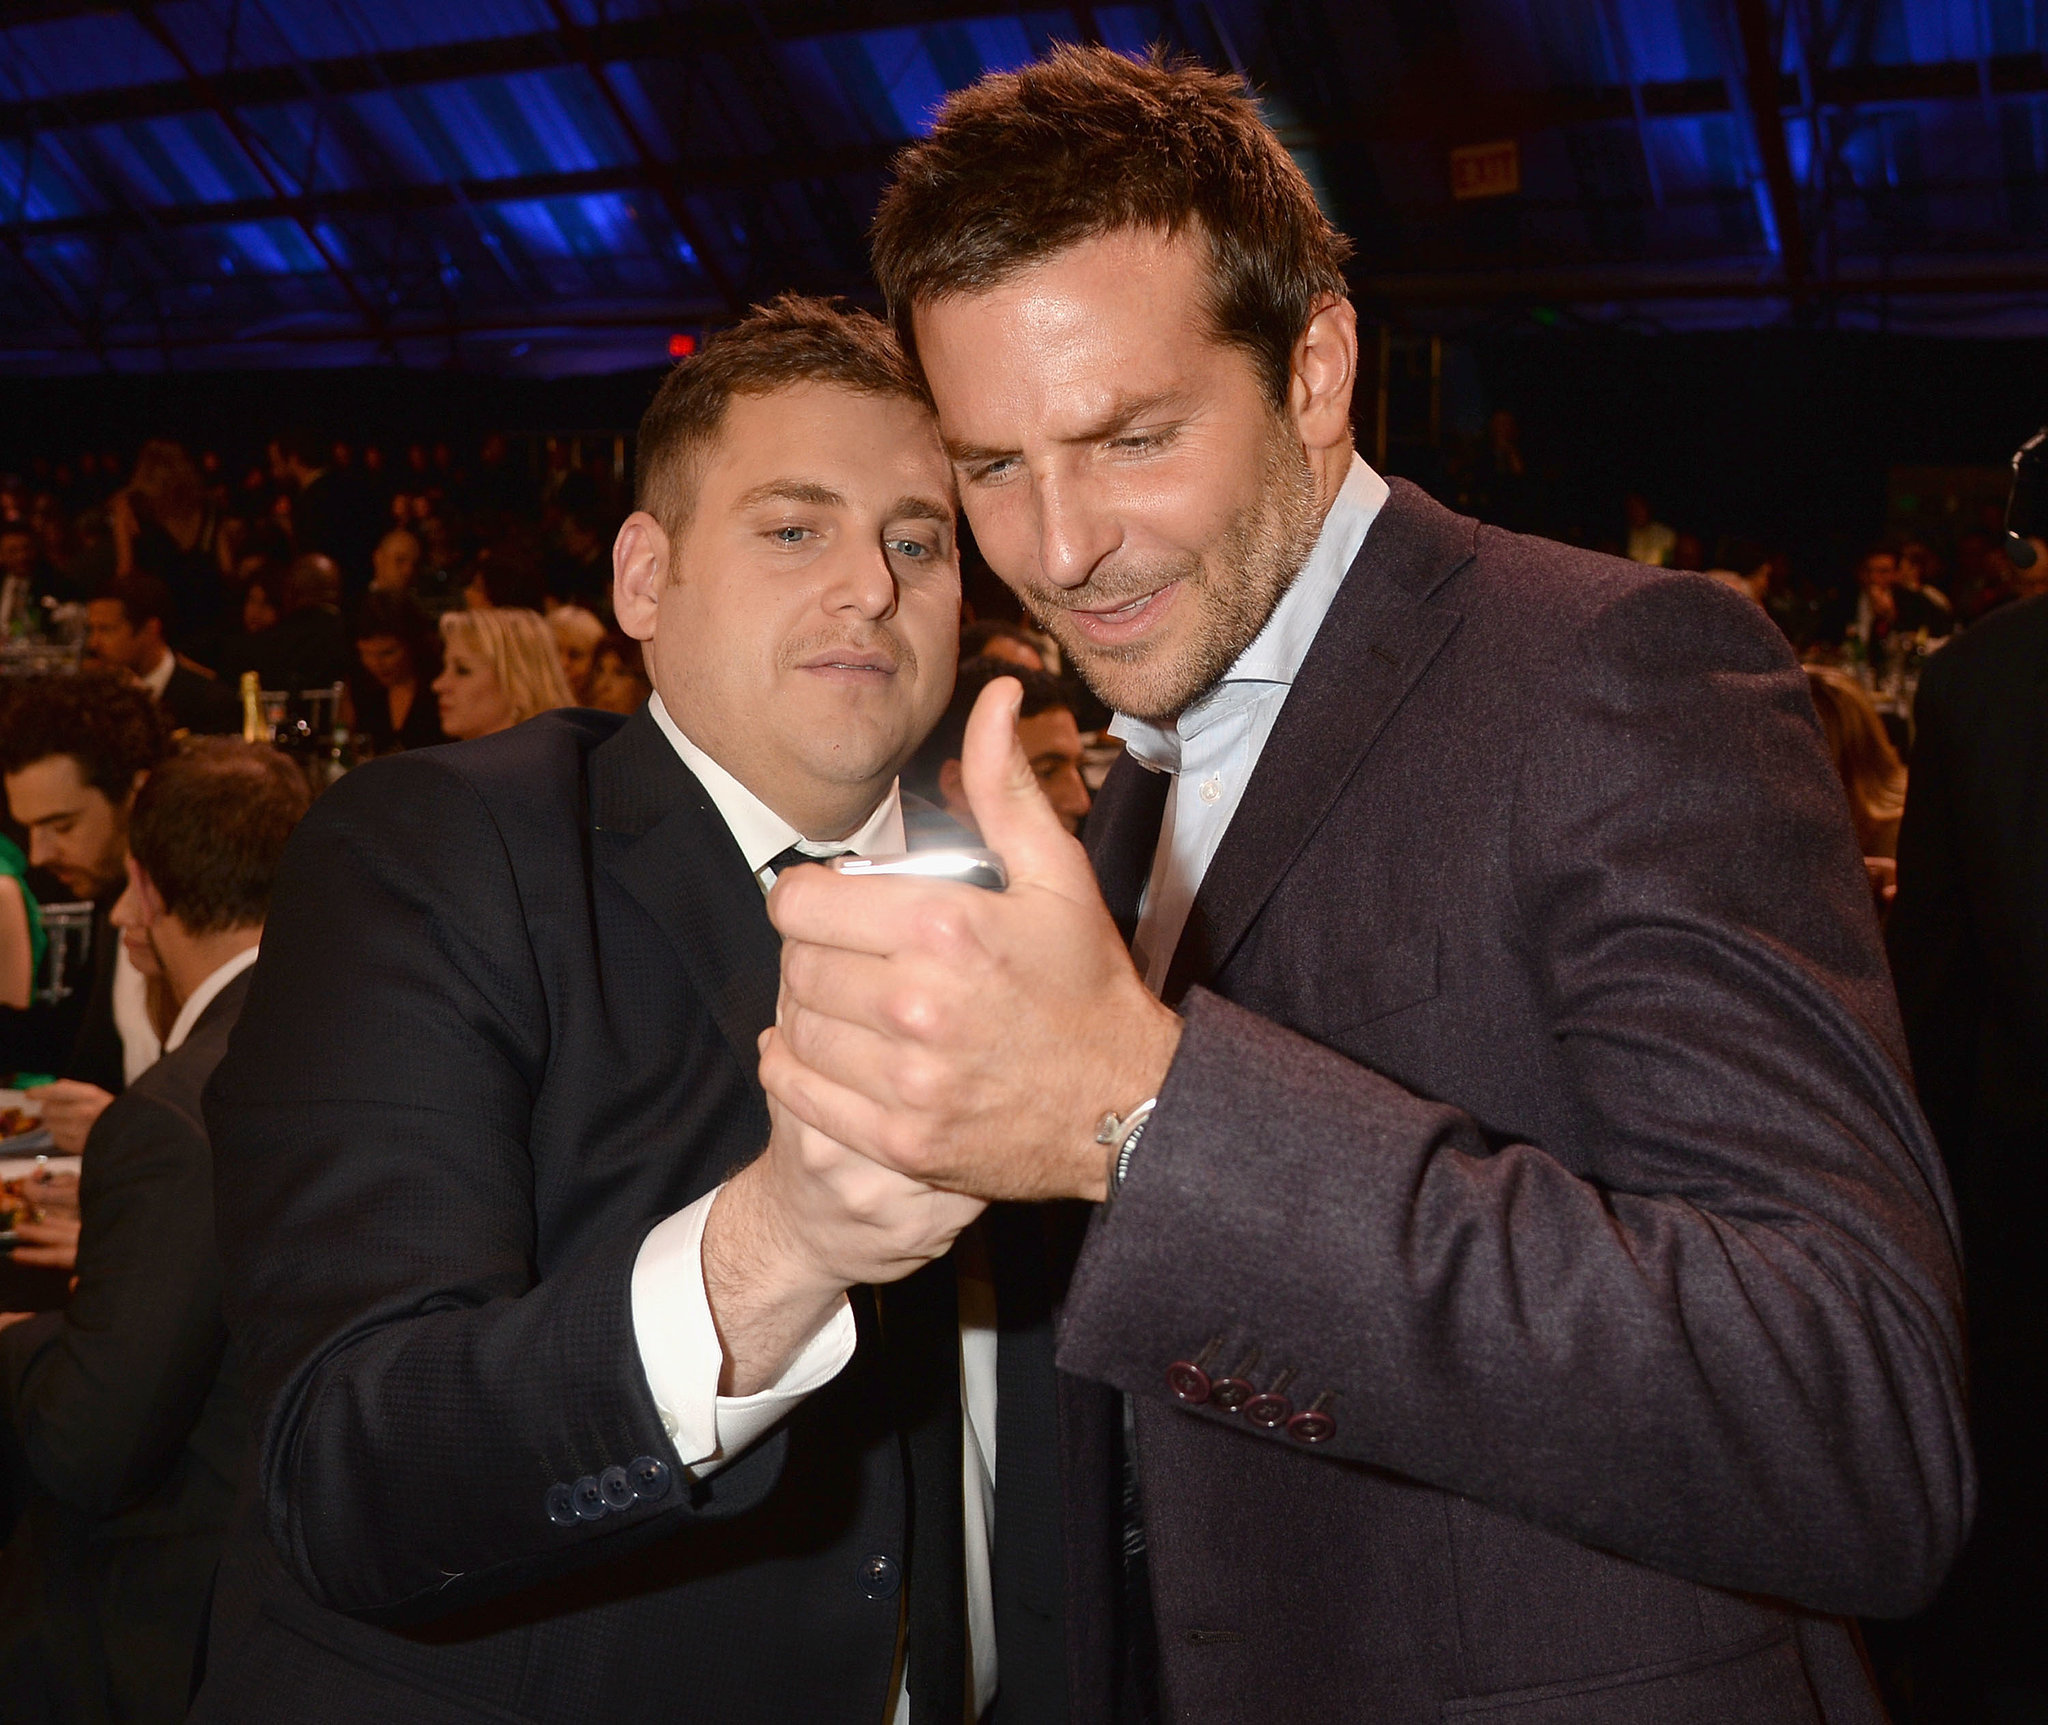 Jonah Hill and had some boisterous fun while looking pics on a phone